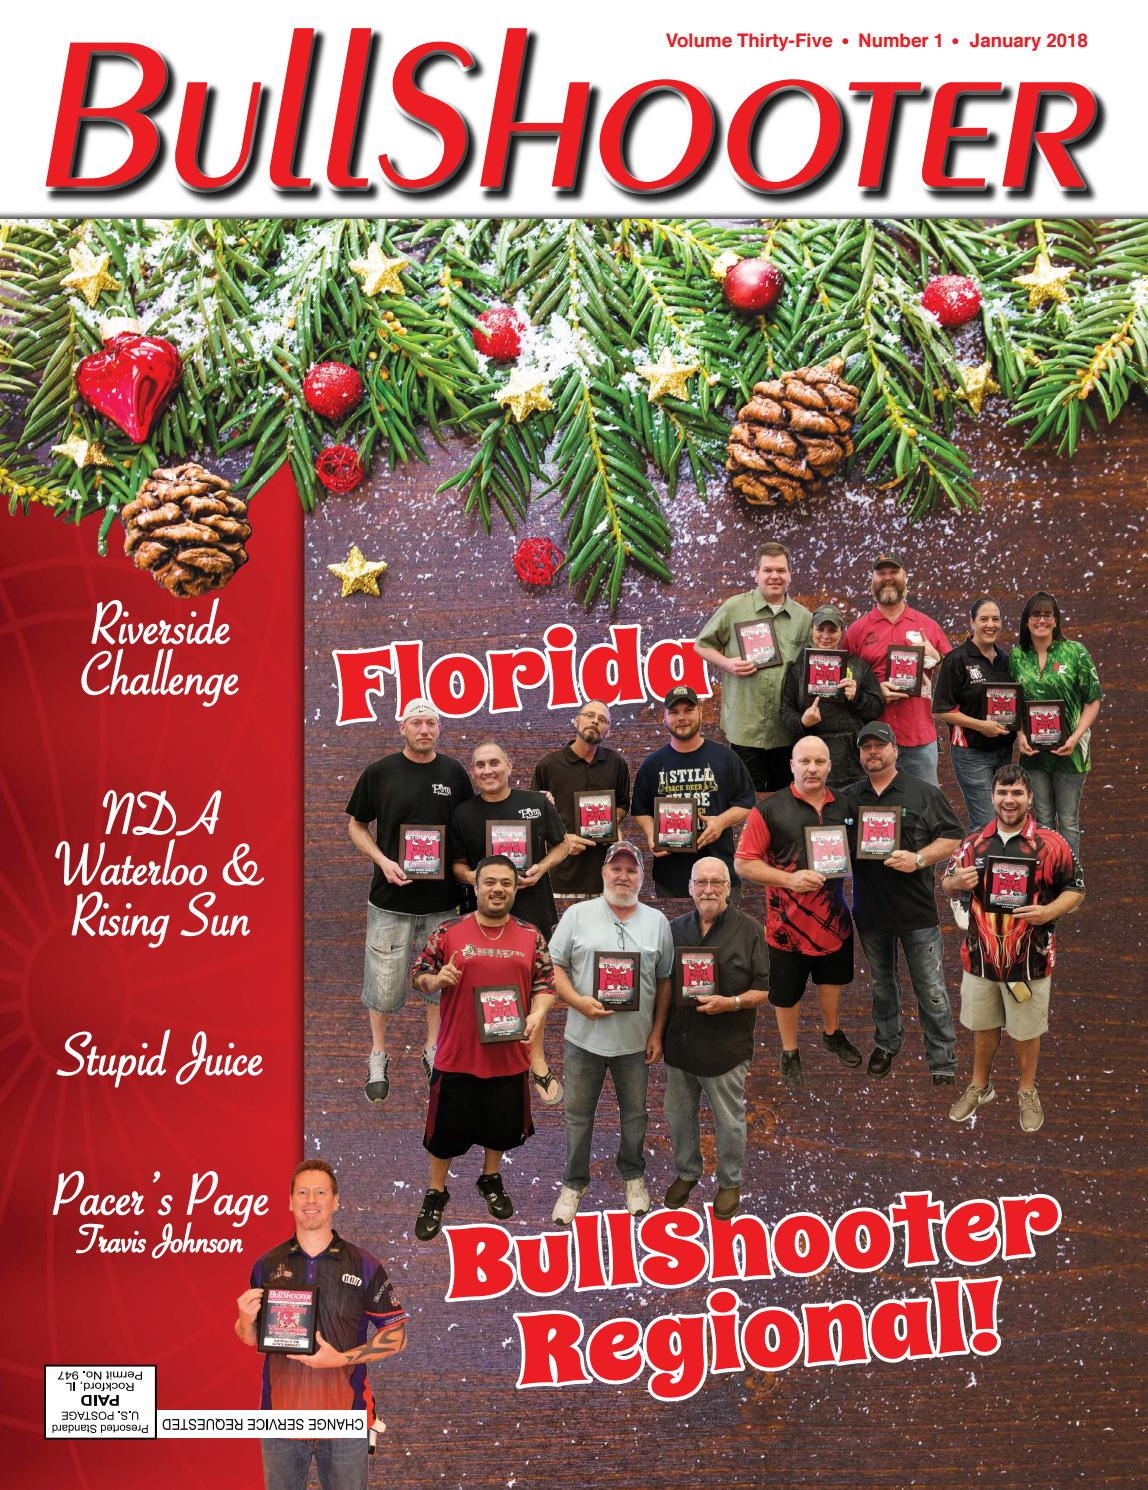 Bullshooter Volume Thirty-Five Number 1 January 2018 by